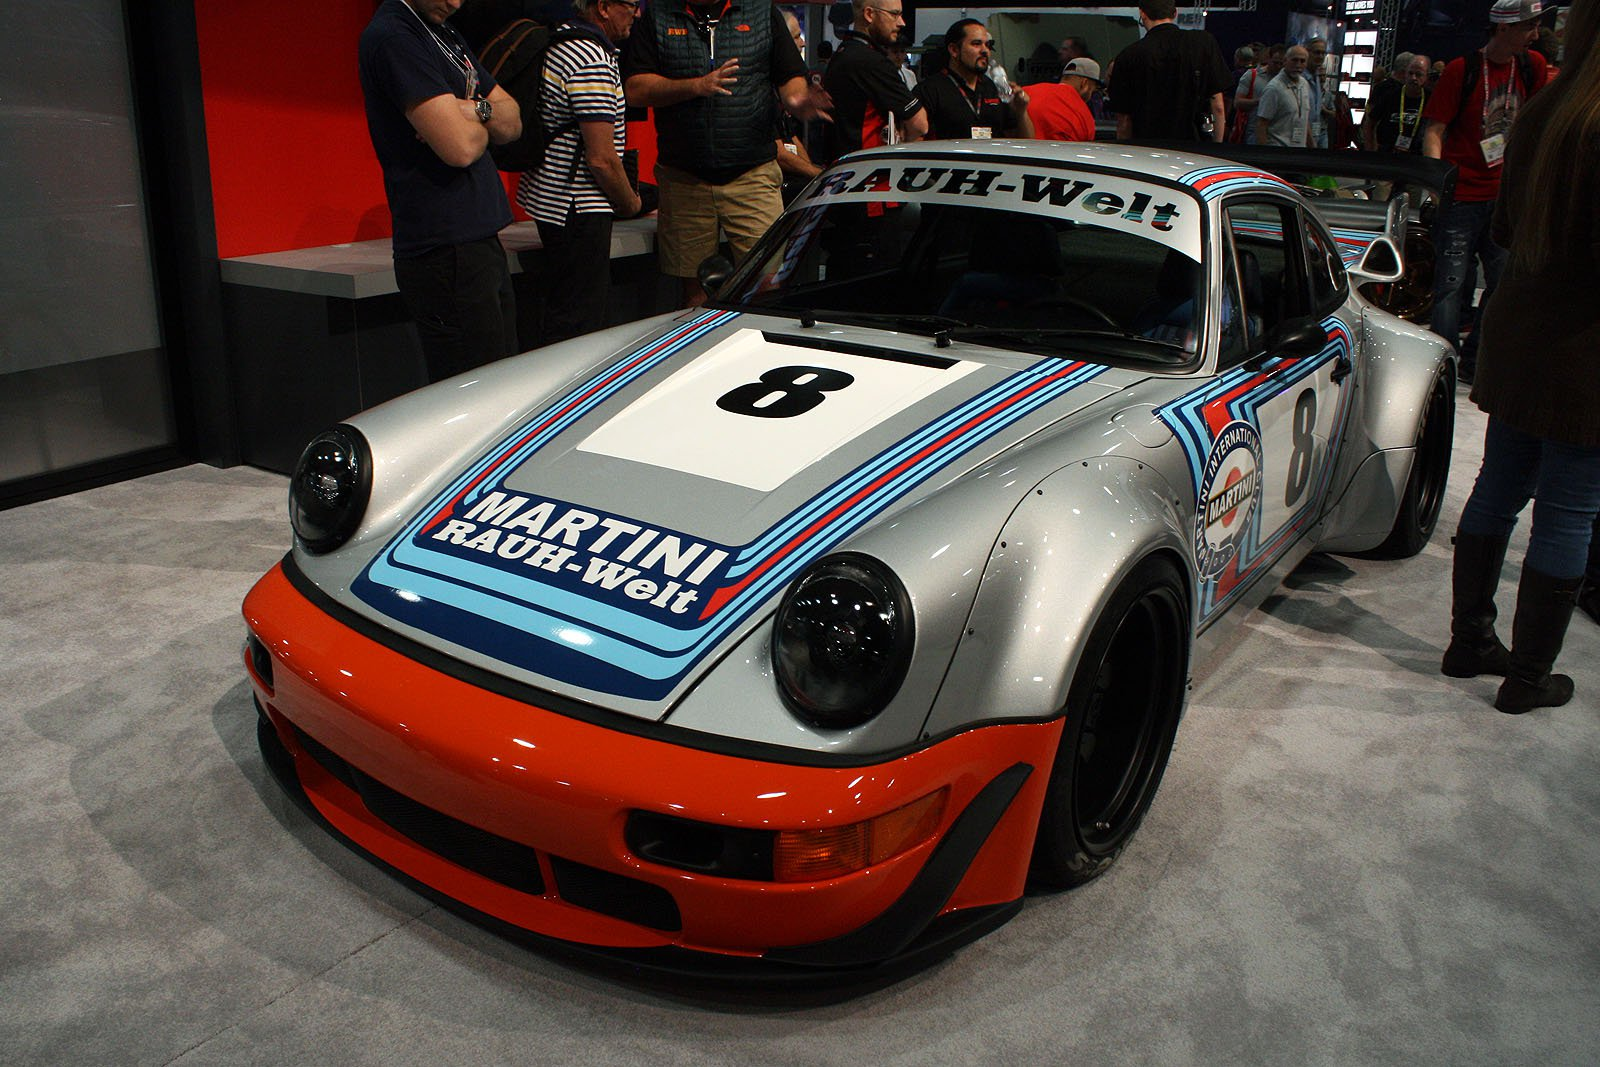 ... SEMA Show Is Just Getting Started, And Among The Lifted Brodozers And  Crystal Encrusted Engines, There Lies An Actual Gem, This Gorgeous RWB Porsche  911 ...